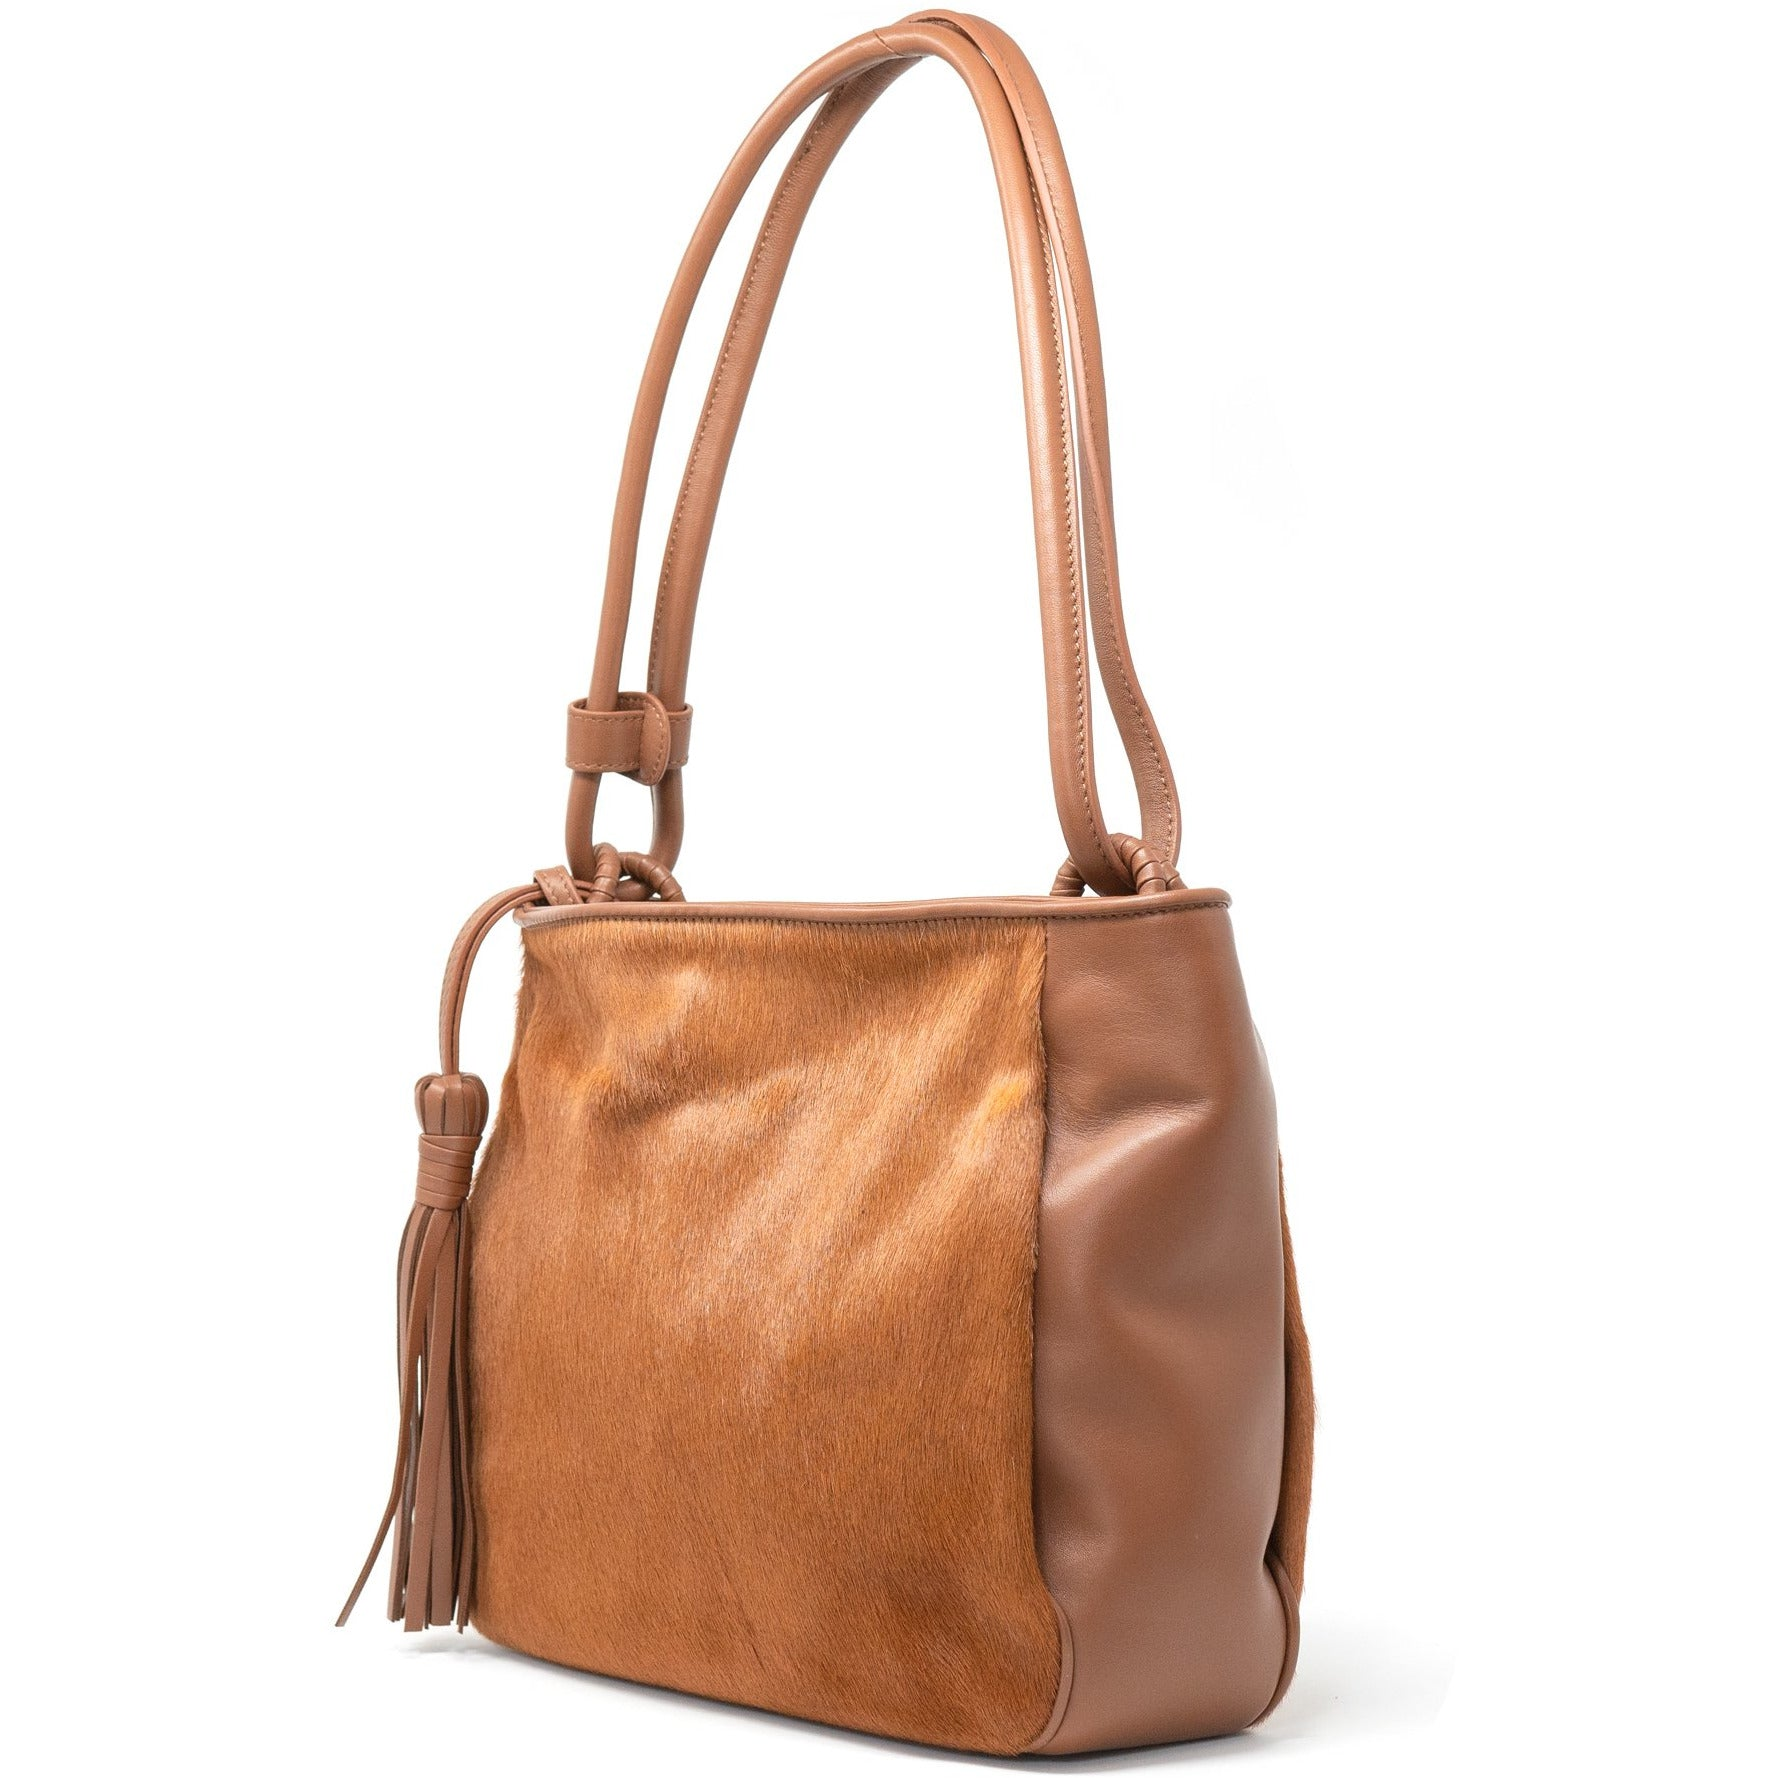 JT40 5558 30 Women Lamb Hair Leather Shoulder Bag - Jennifer Tattanelli